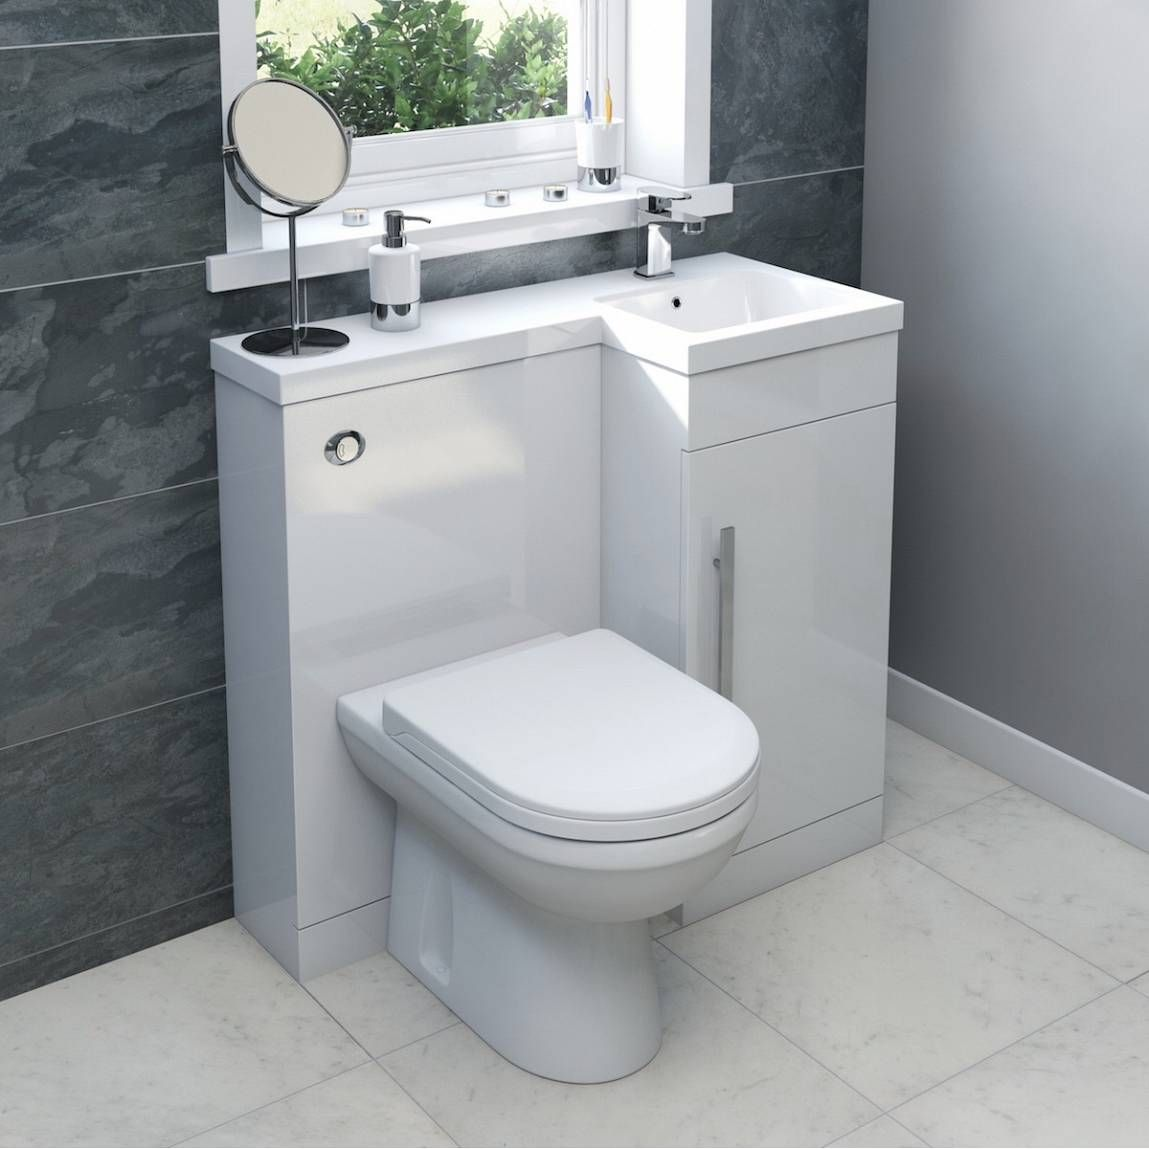 Bathroom Accessories Victoria Plumb myspace white combination unit rh with autograph btw toilet